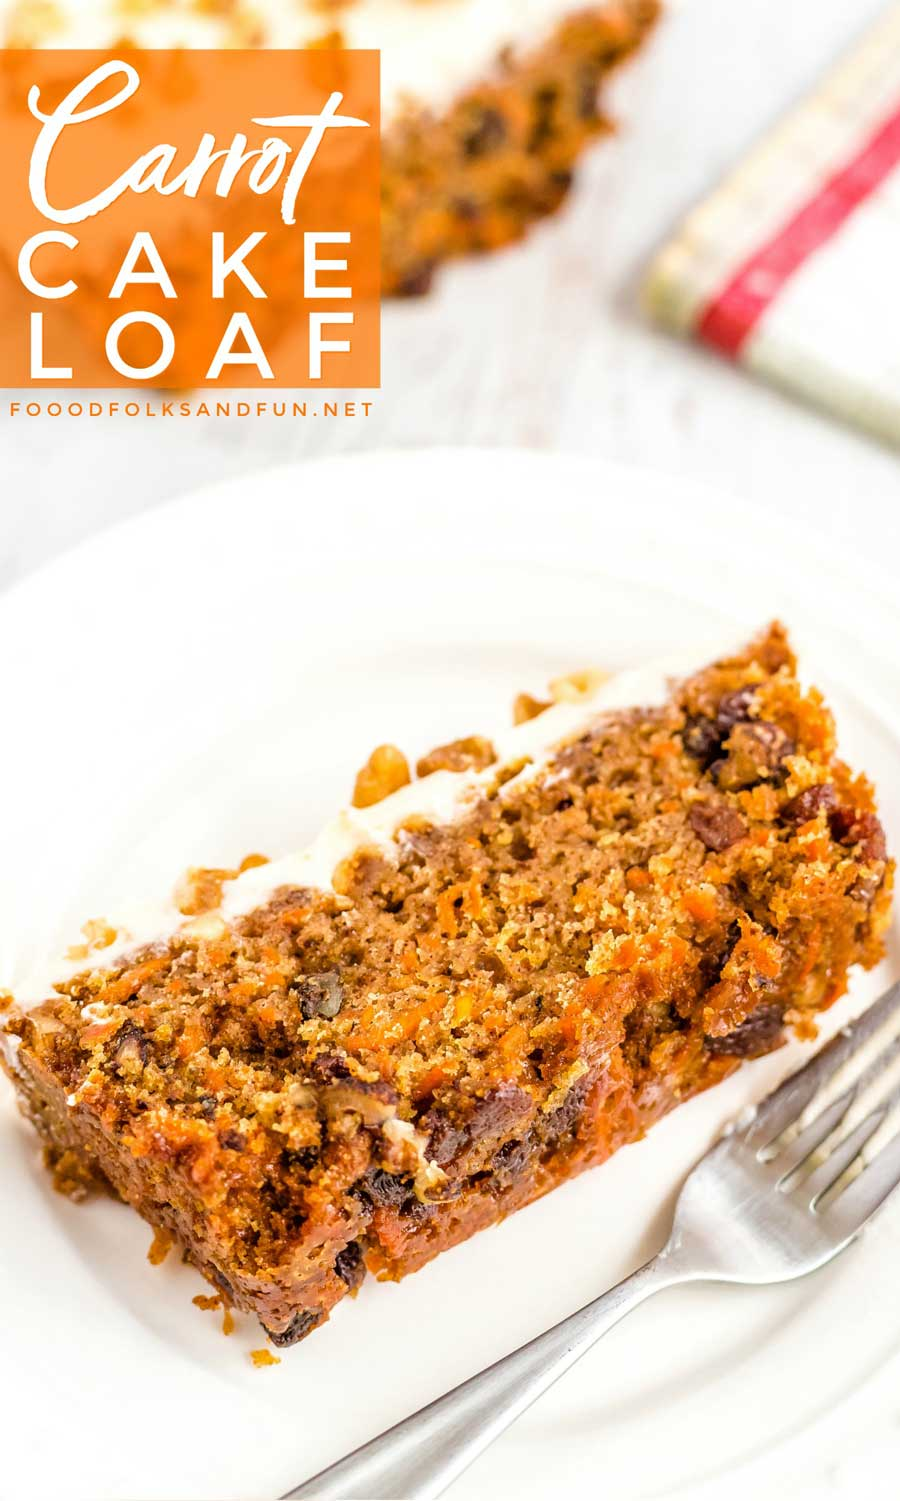 Carrot Cake made in a loaf pan.